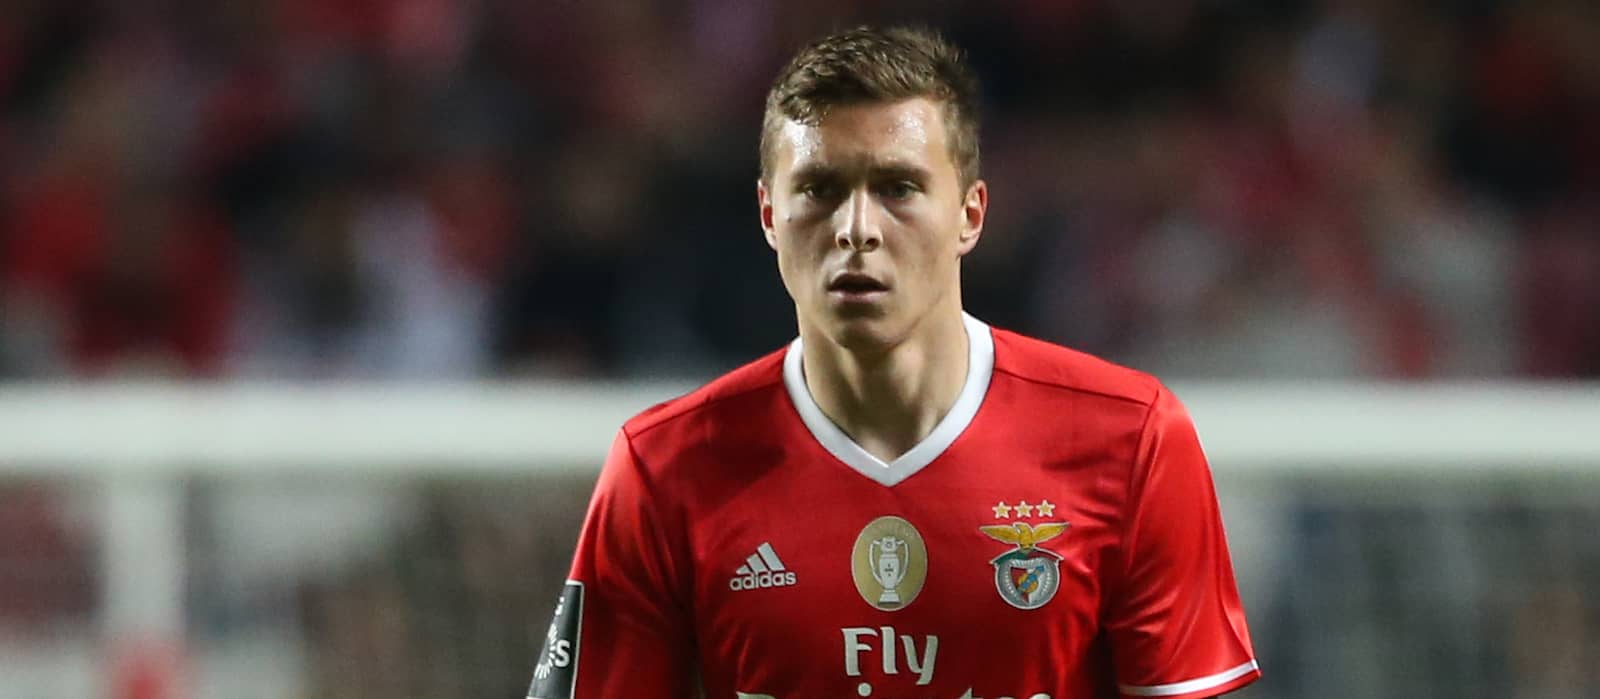 Victor lindelof in action tonight for benfica vs rio ave - Victor lindelof ...